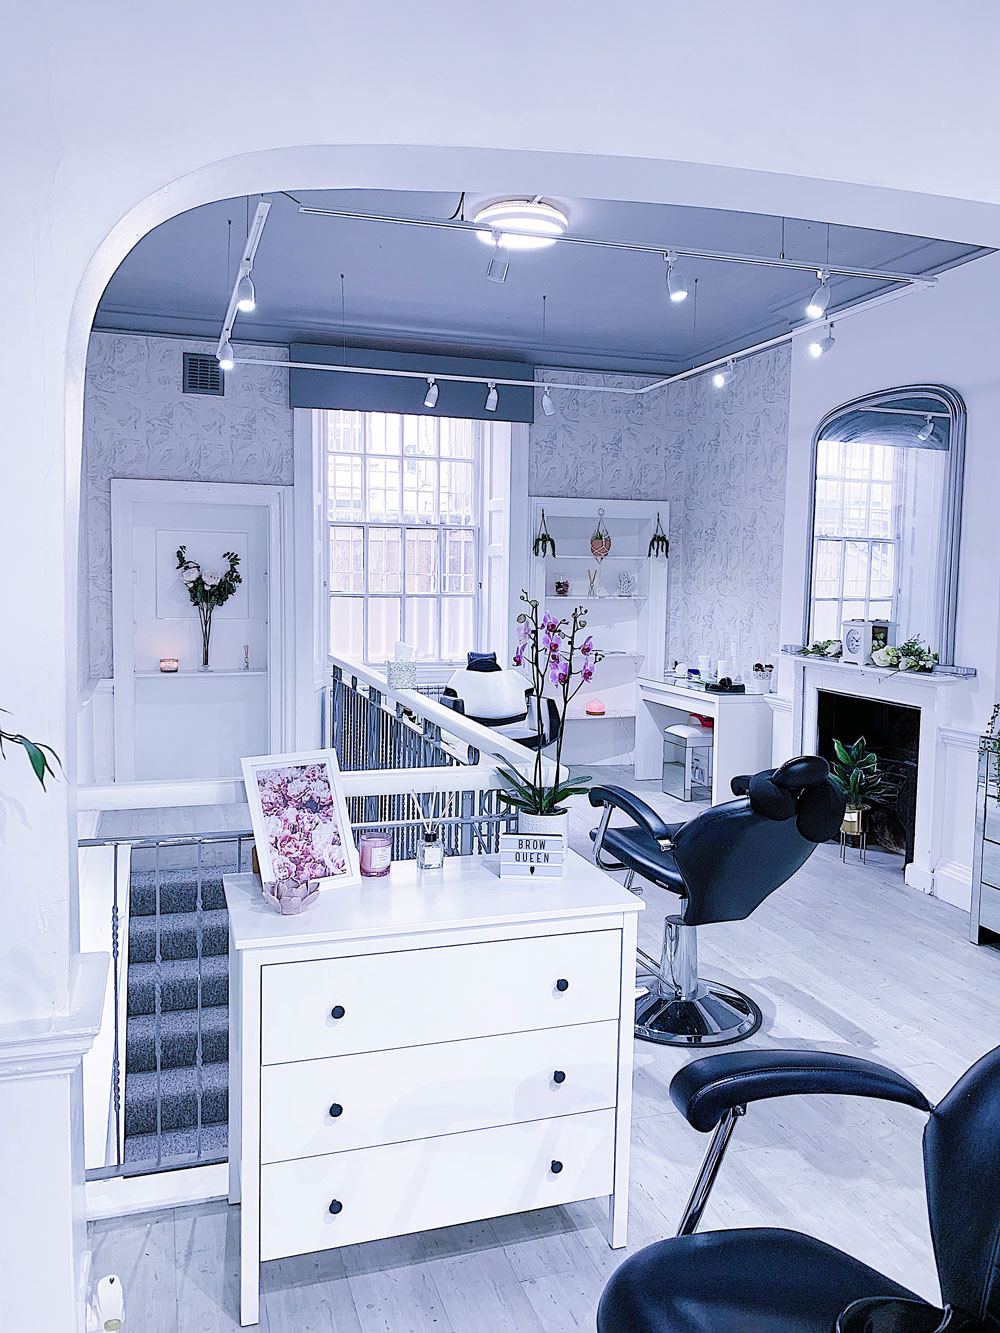 Salon with multiple chairs